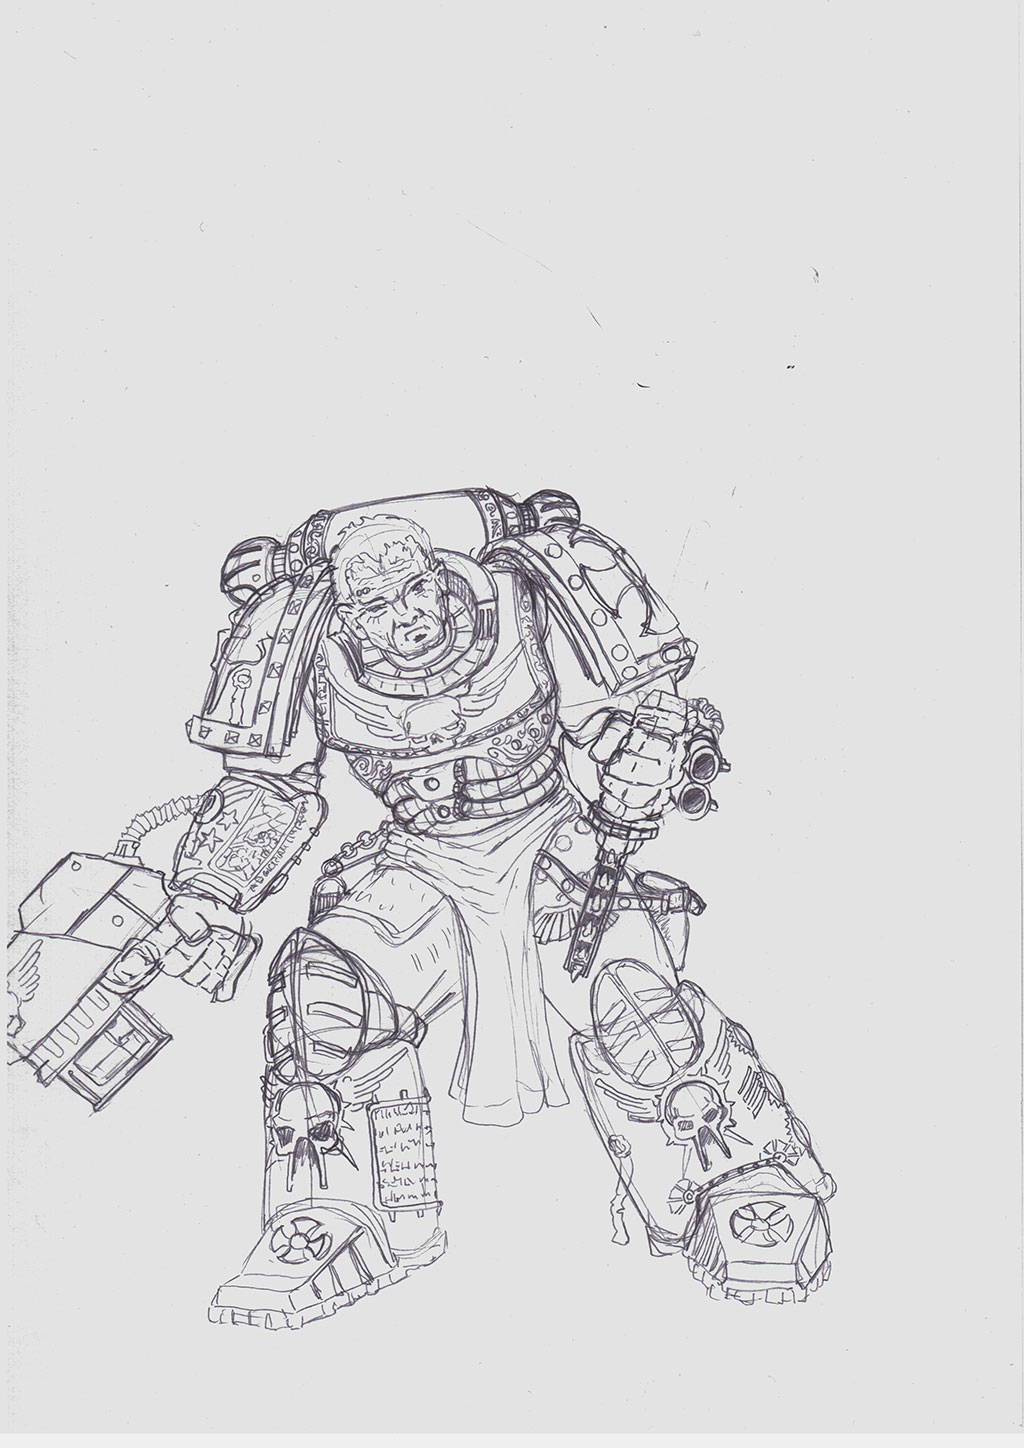 Space-marine-crusader by winterfluss